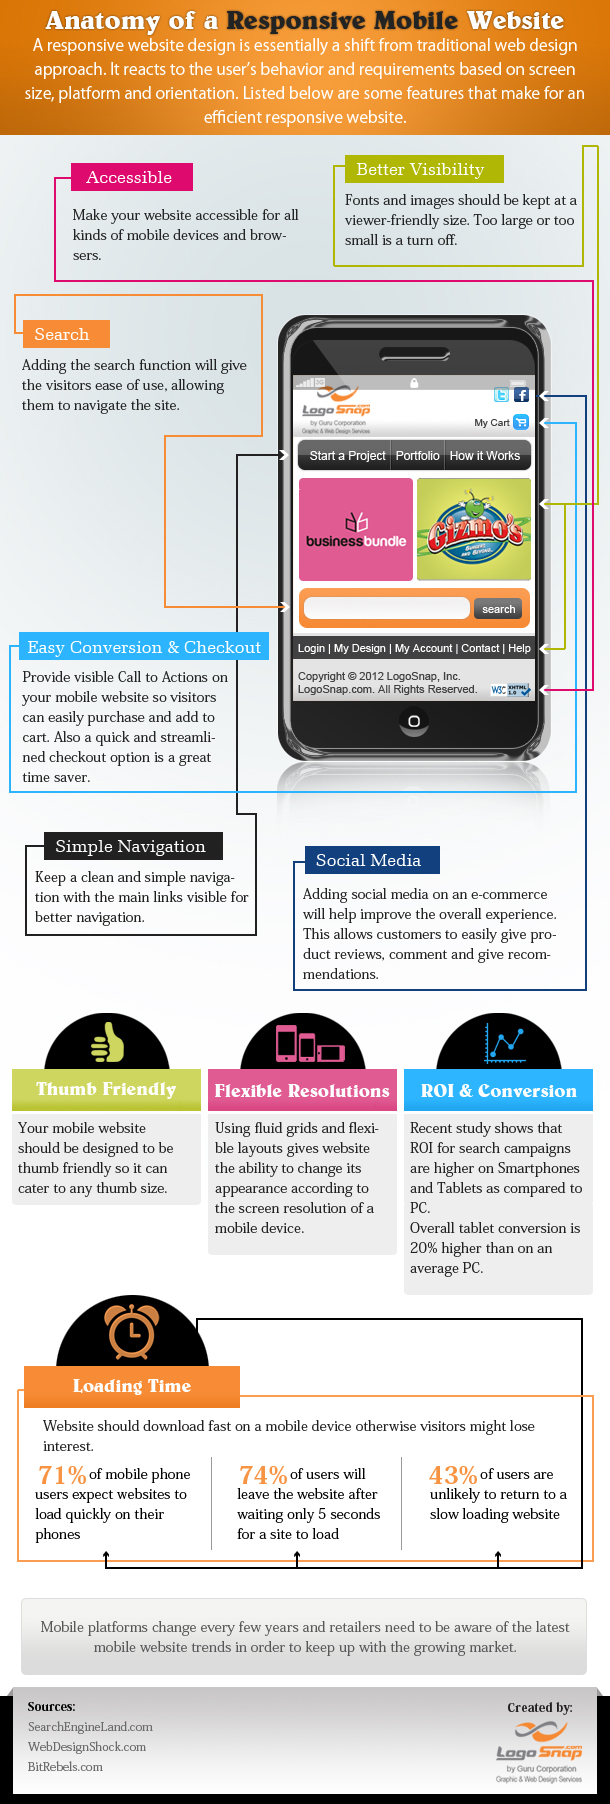 Anatomy of a Responsive Mobile Website [Infographic]